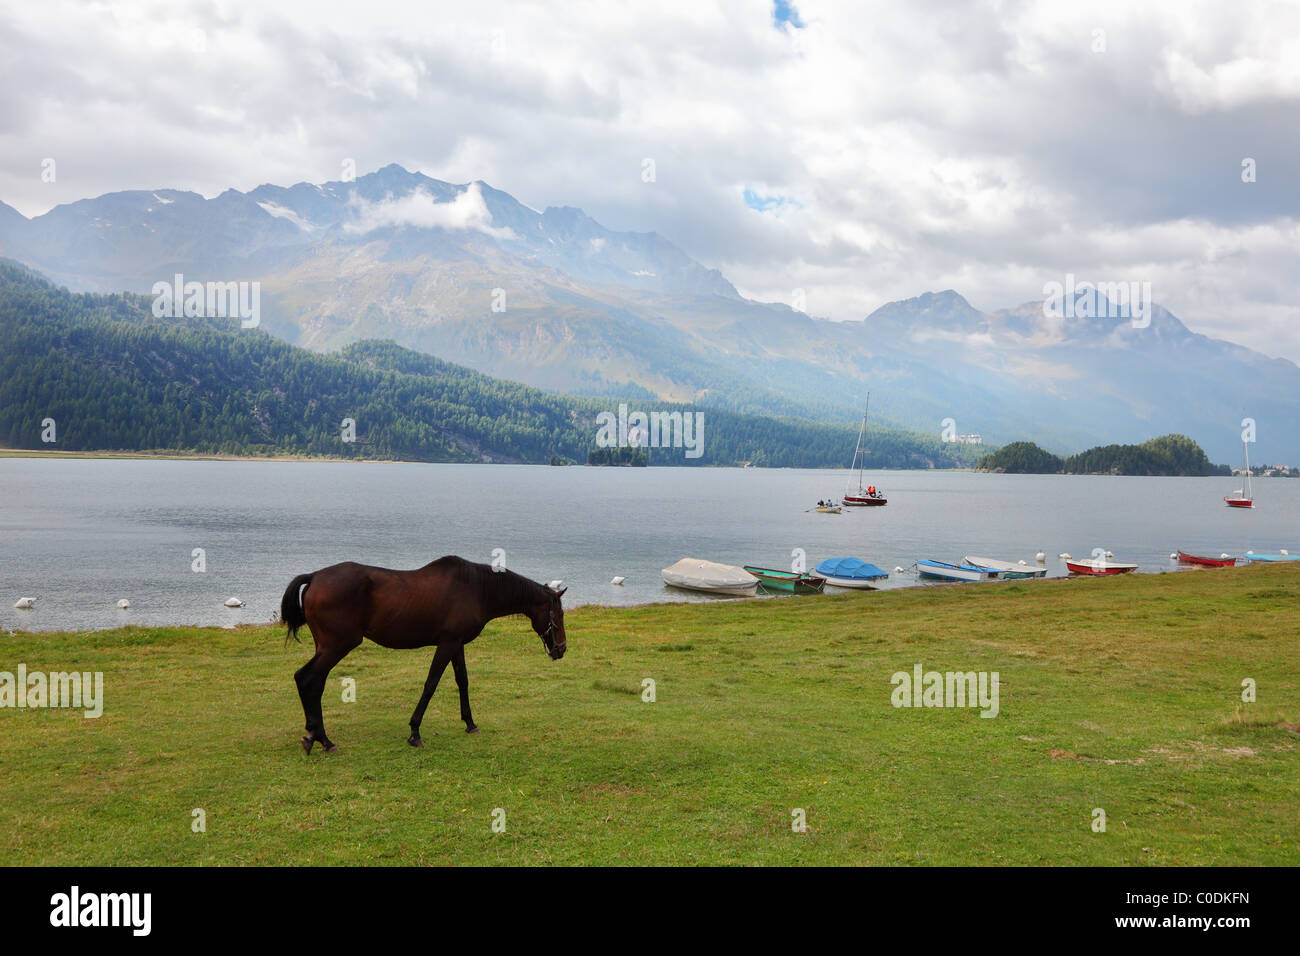 Sleek thoroughbred bay horse grazing near the moored yachts - Stock Image